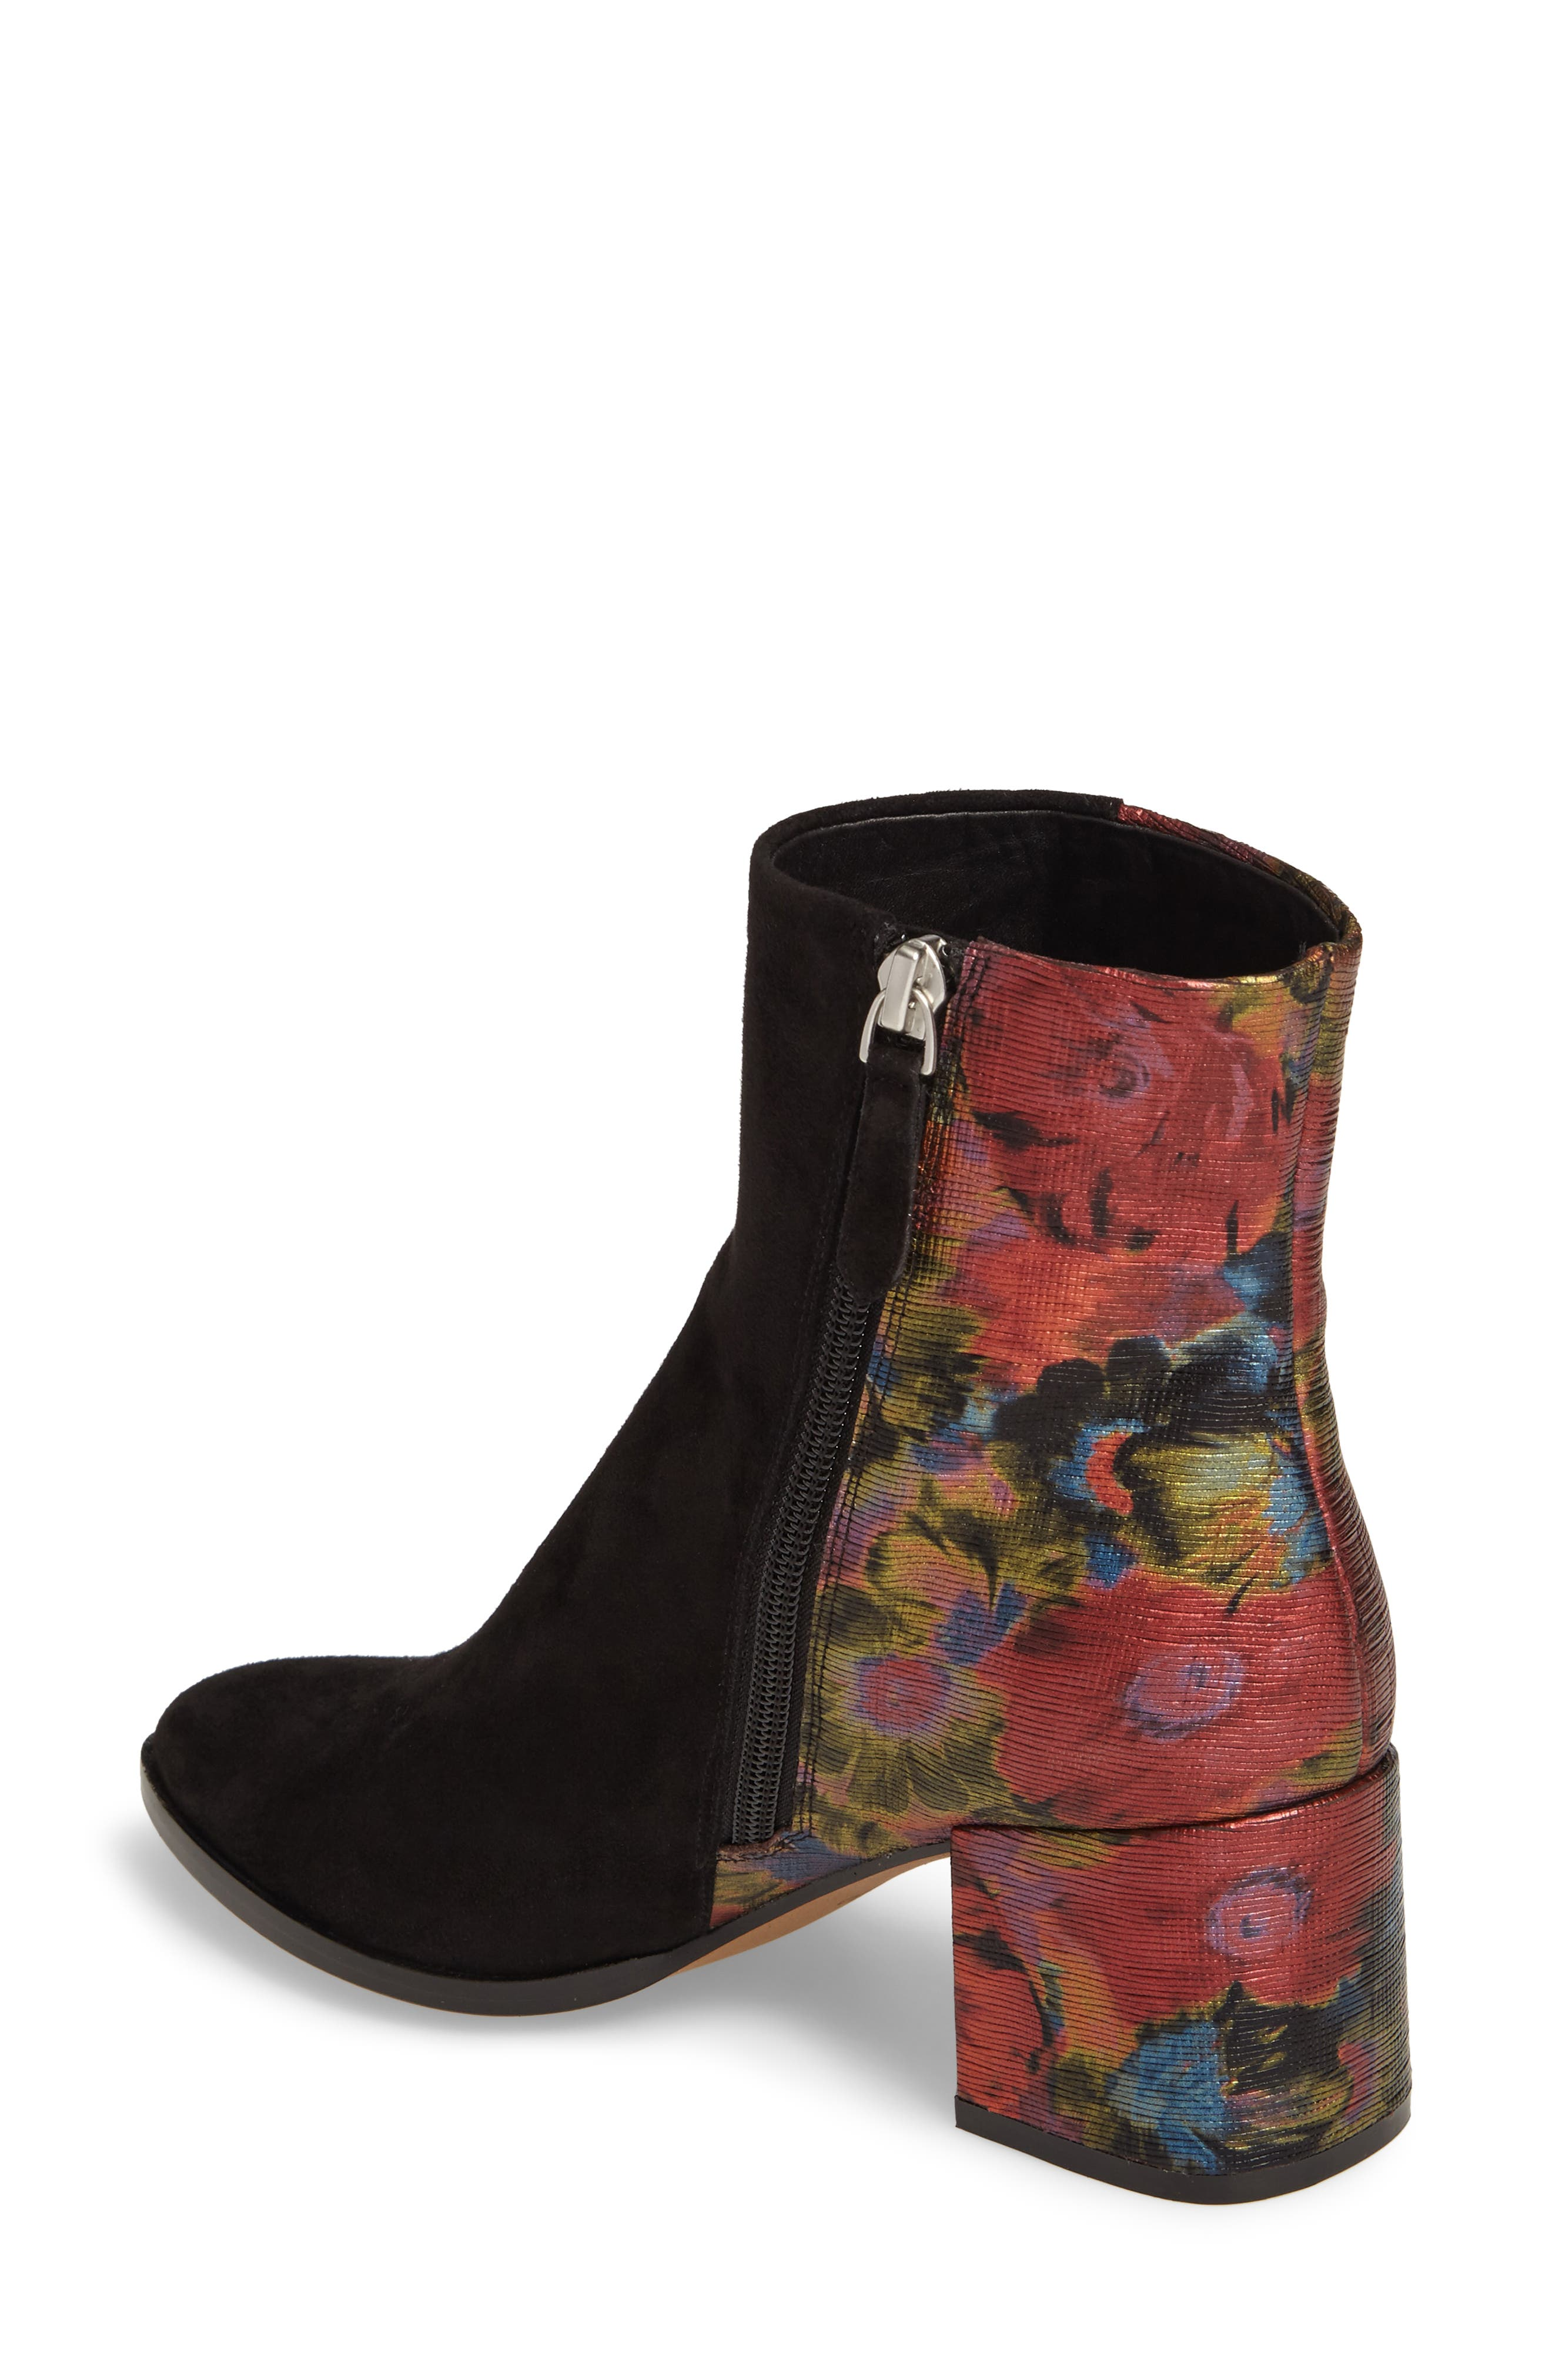 Brady Embellished Boot,                             Alternate thumbnail 2, color,                             Black/ Red Suede